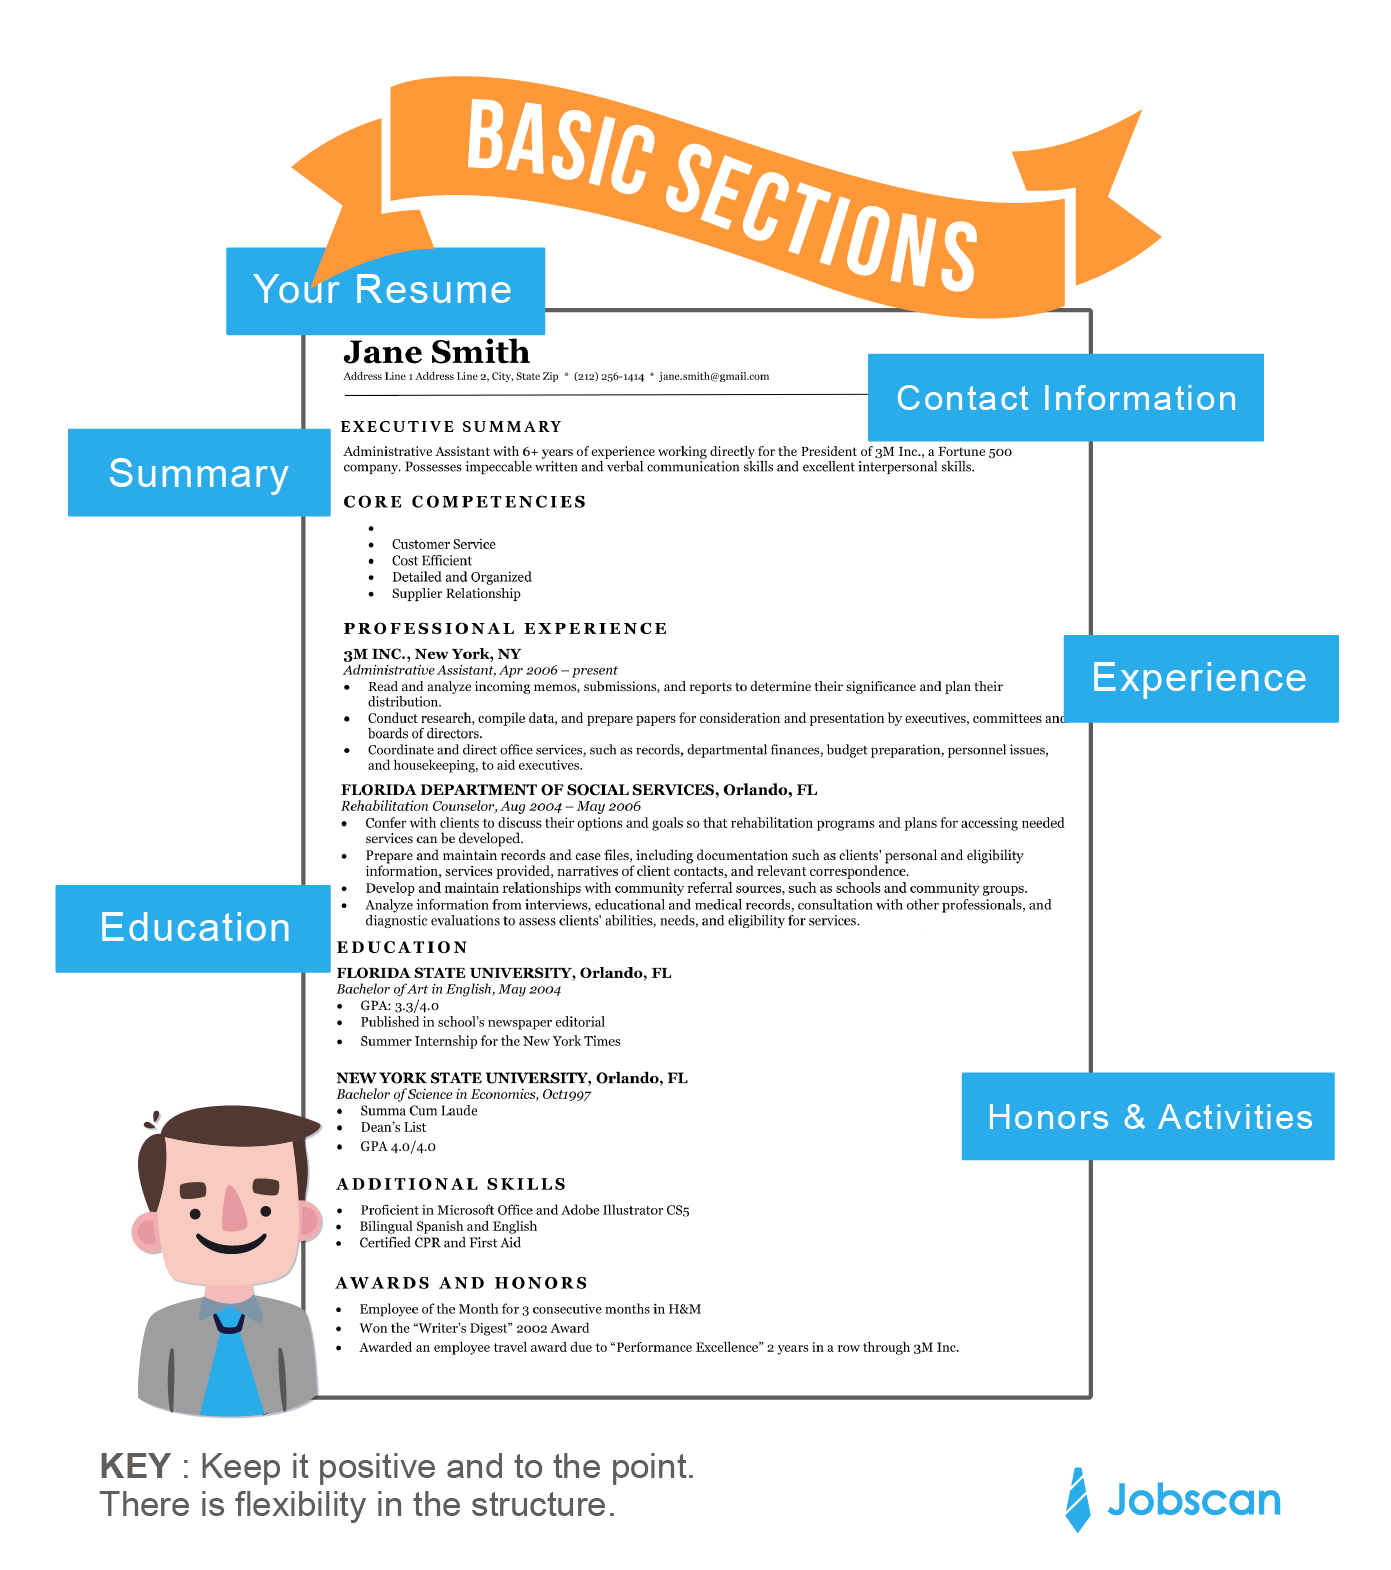 Resume Templates - Jobscan